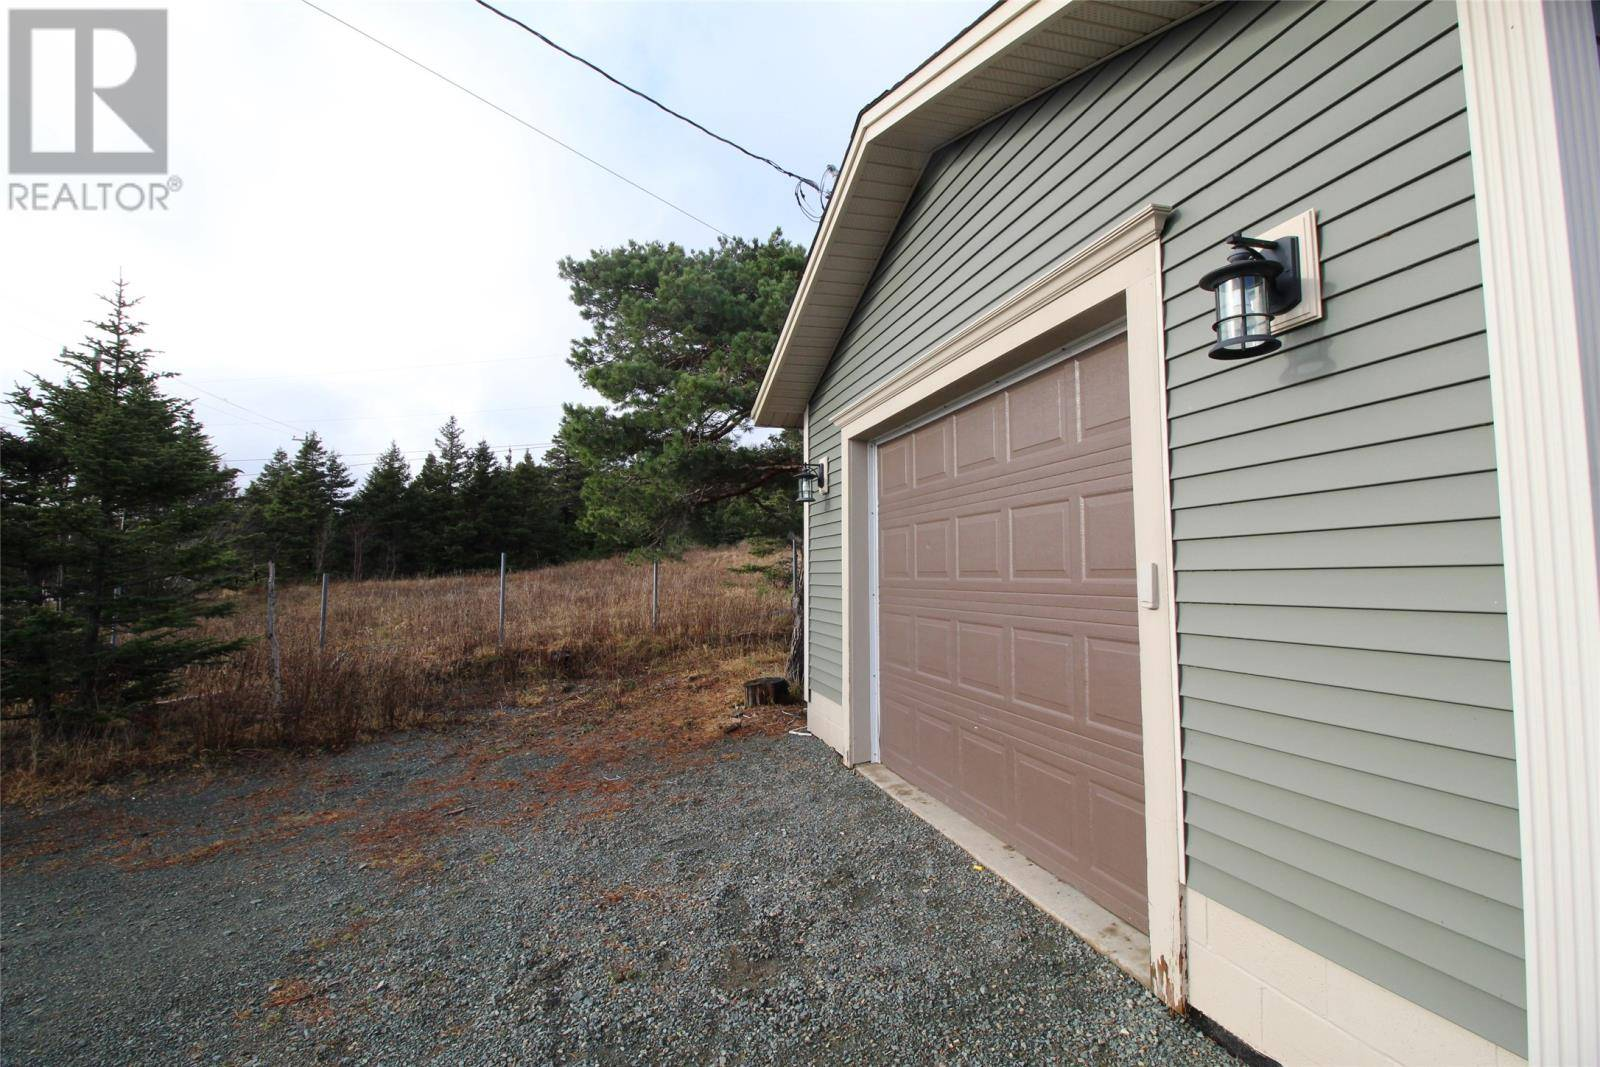 House for sale at 128 Old Broad Cove Rd Portugal Cove Newfoundland - MLS: 1208817